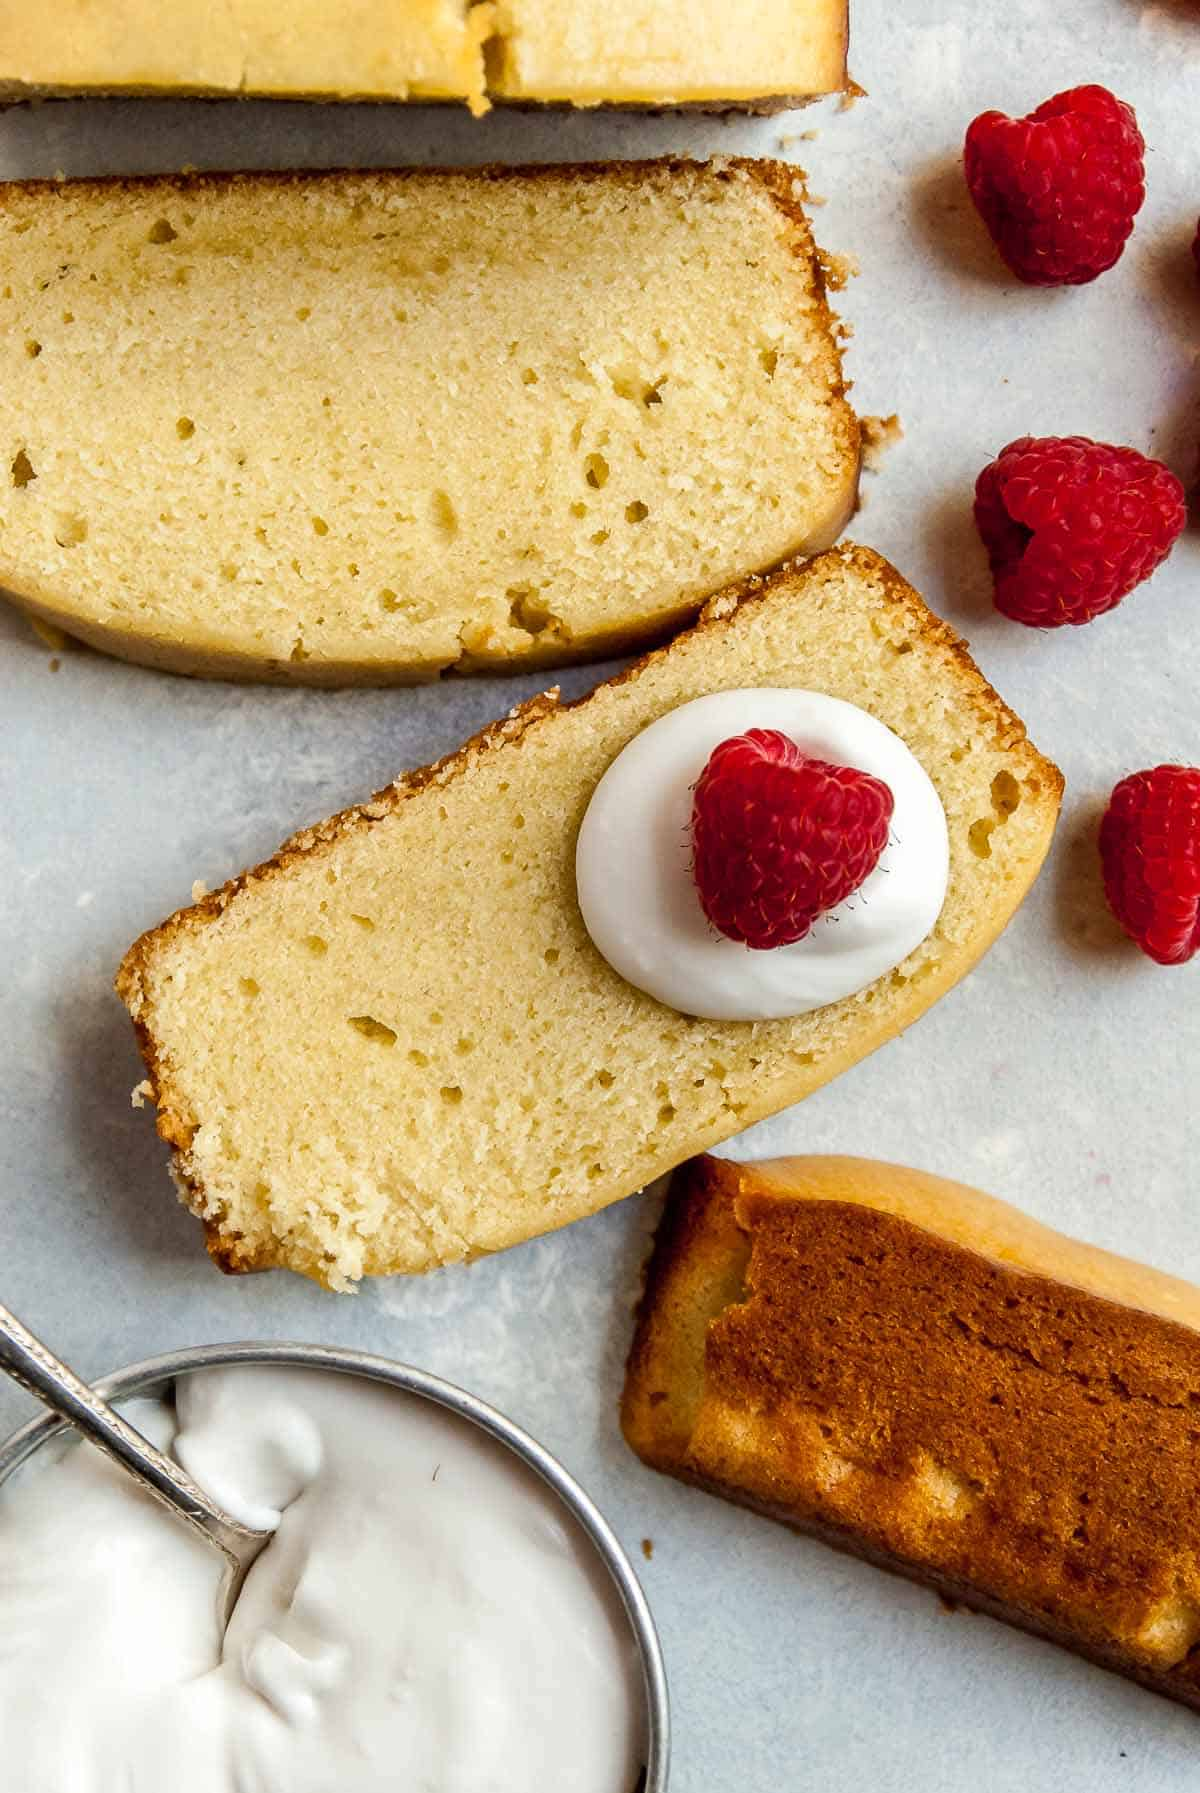 slices of vegan pound cake with raspberries and coconut whipped cream on a spoon